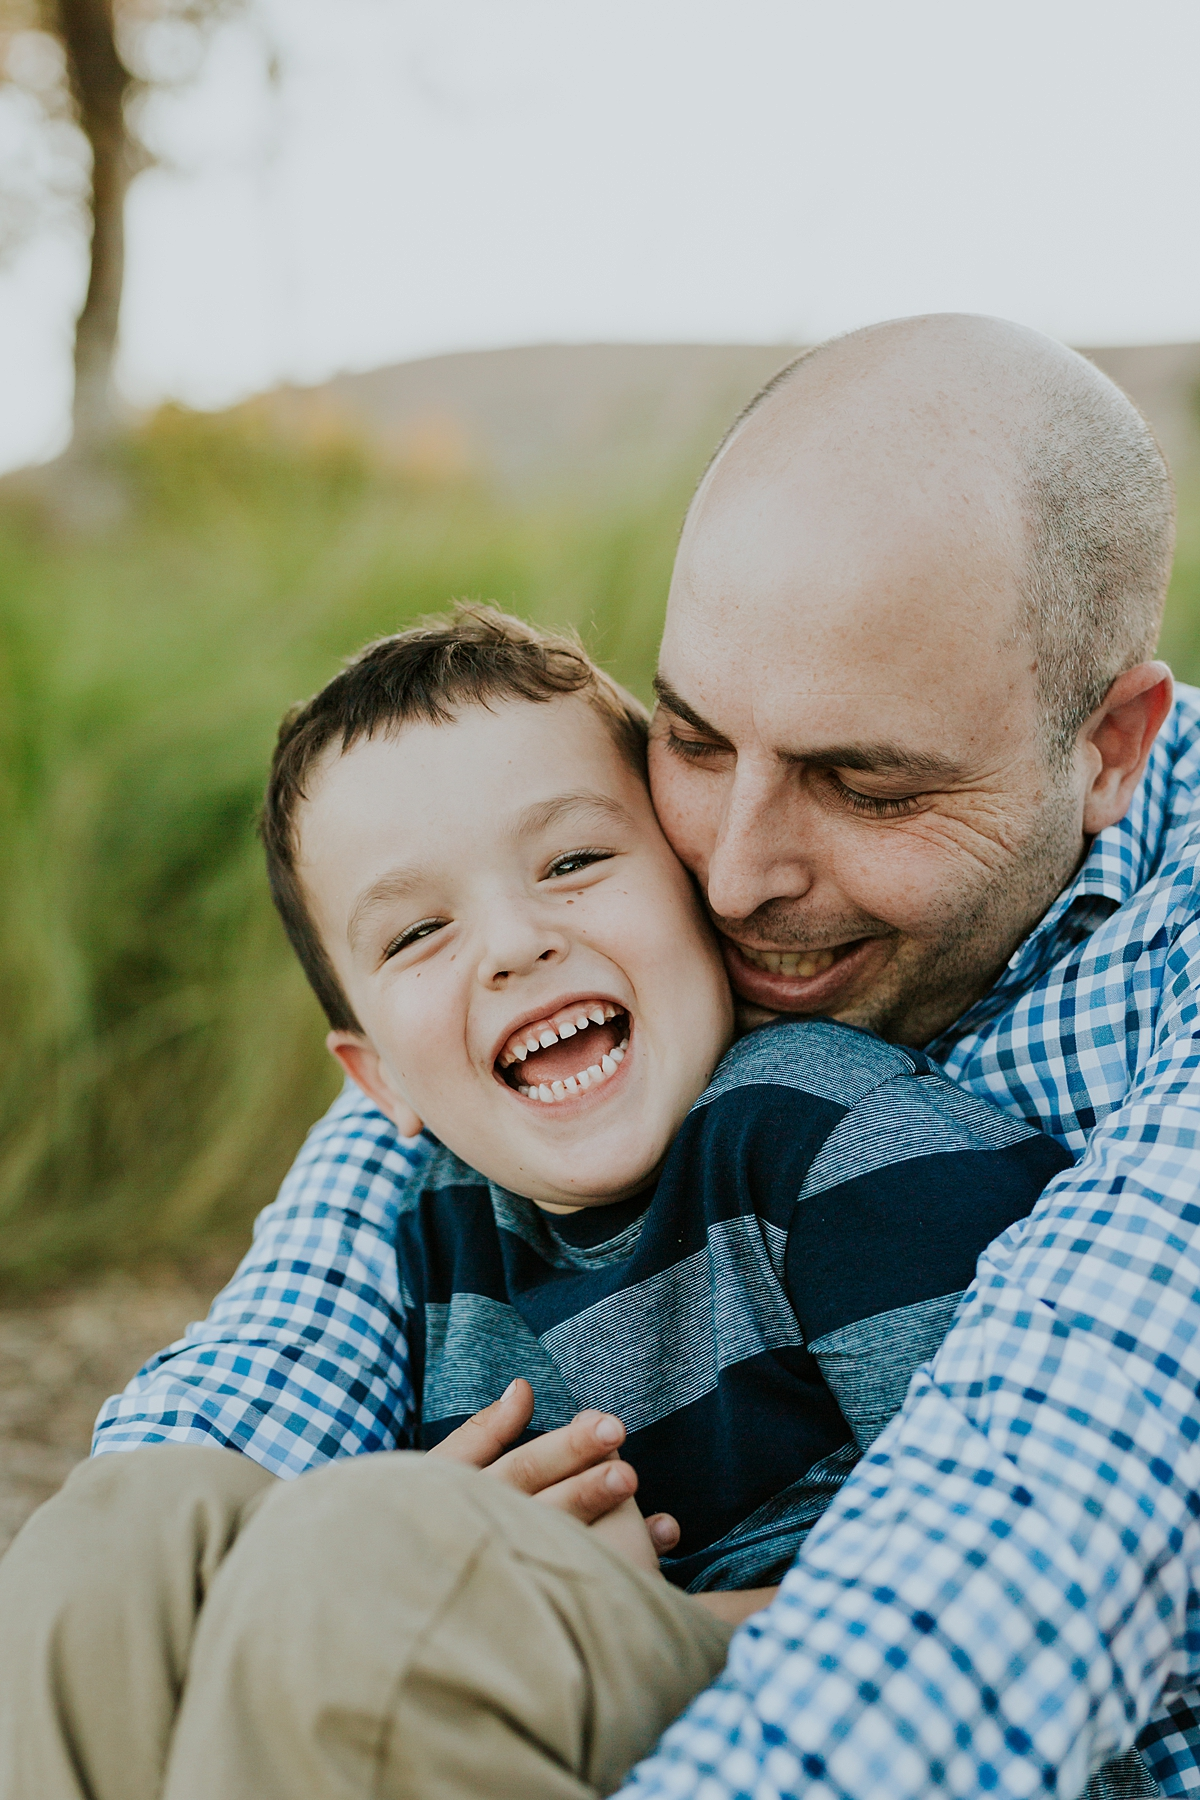 Orange County family photographer. Candid photo of dad and oldest son laughing during family photo shoot at Quail Hill by Krystil McDowall Photography